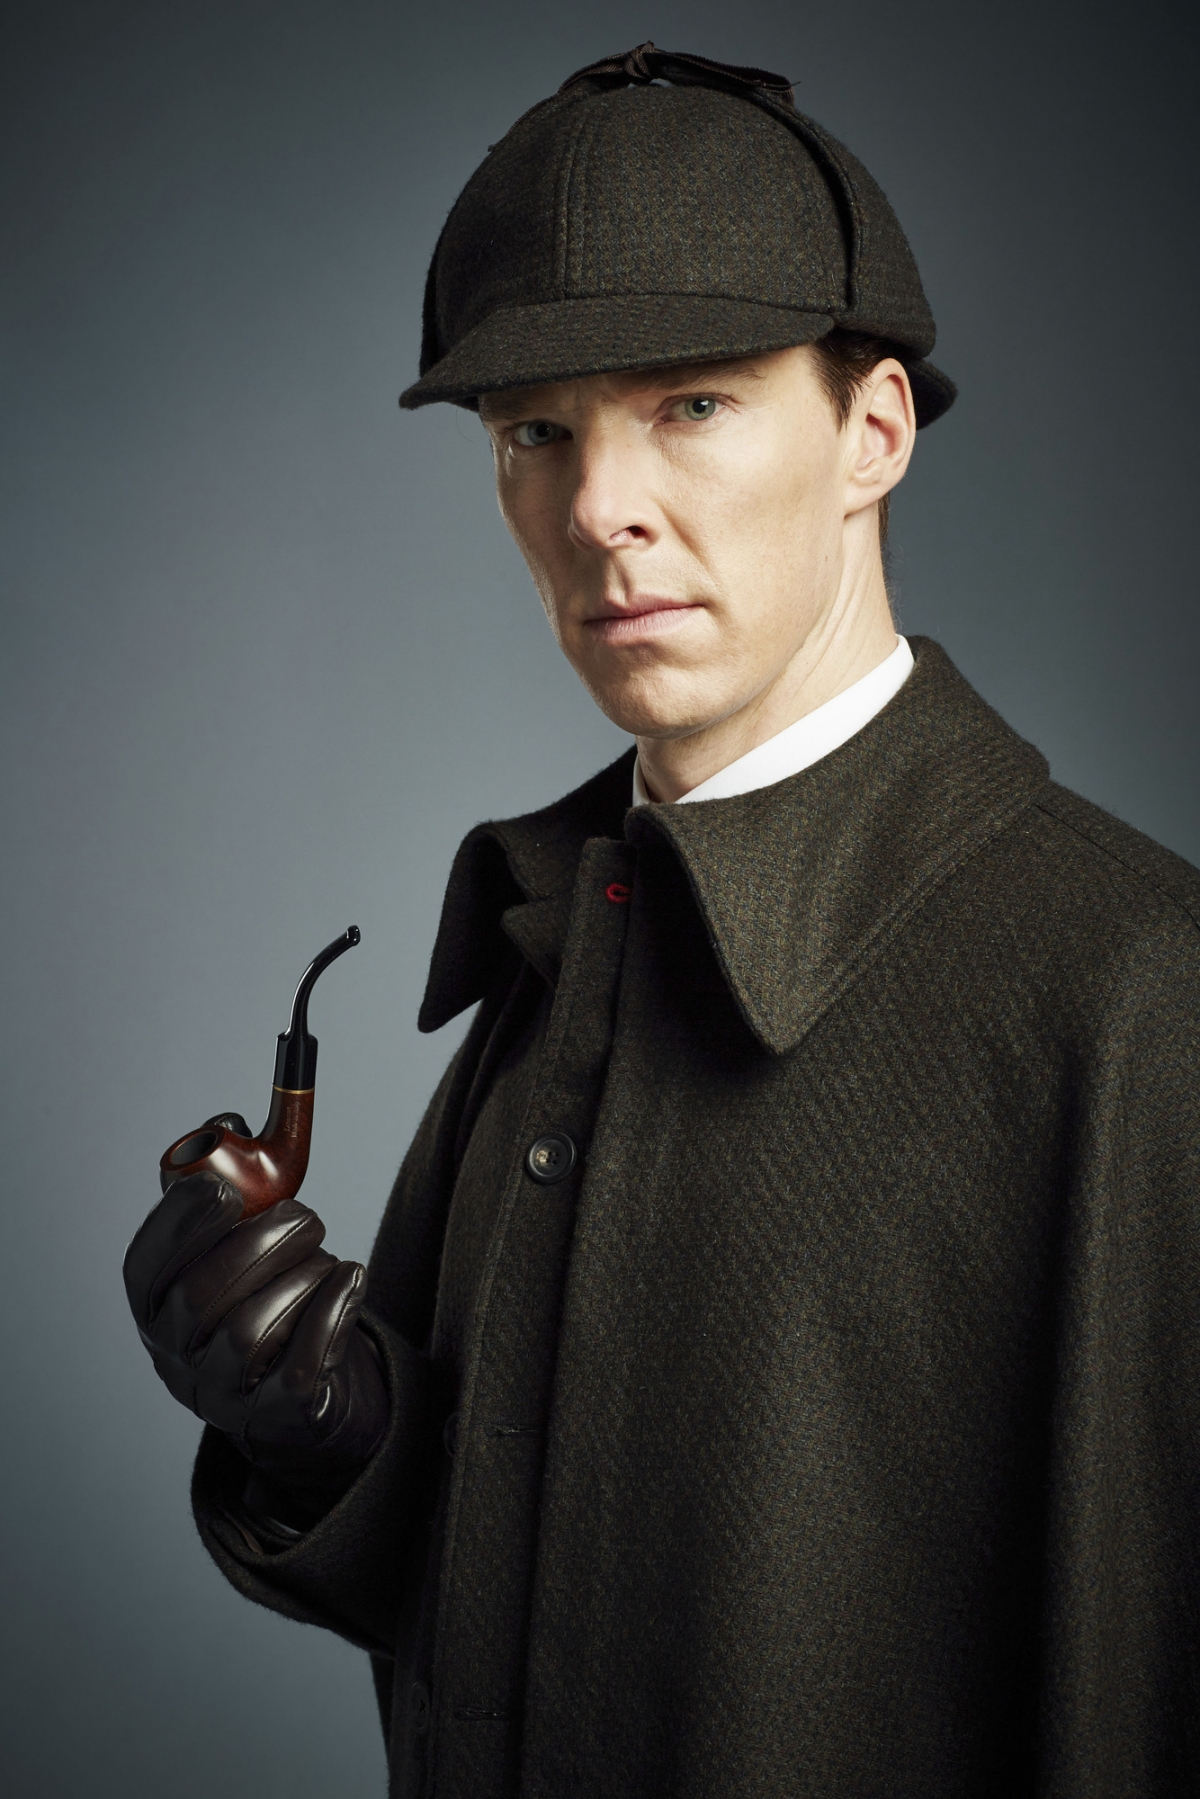 Sherlock: The Abominable Bride images see Benedict ...